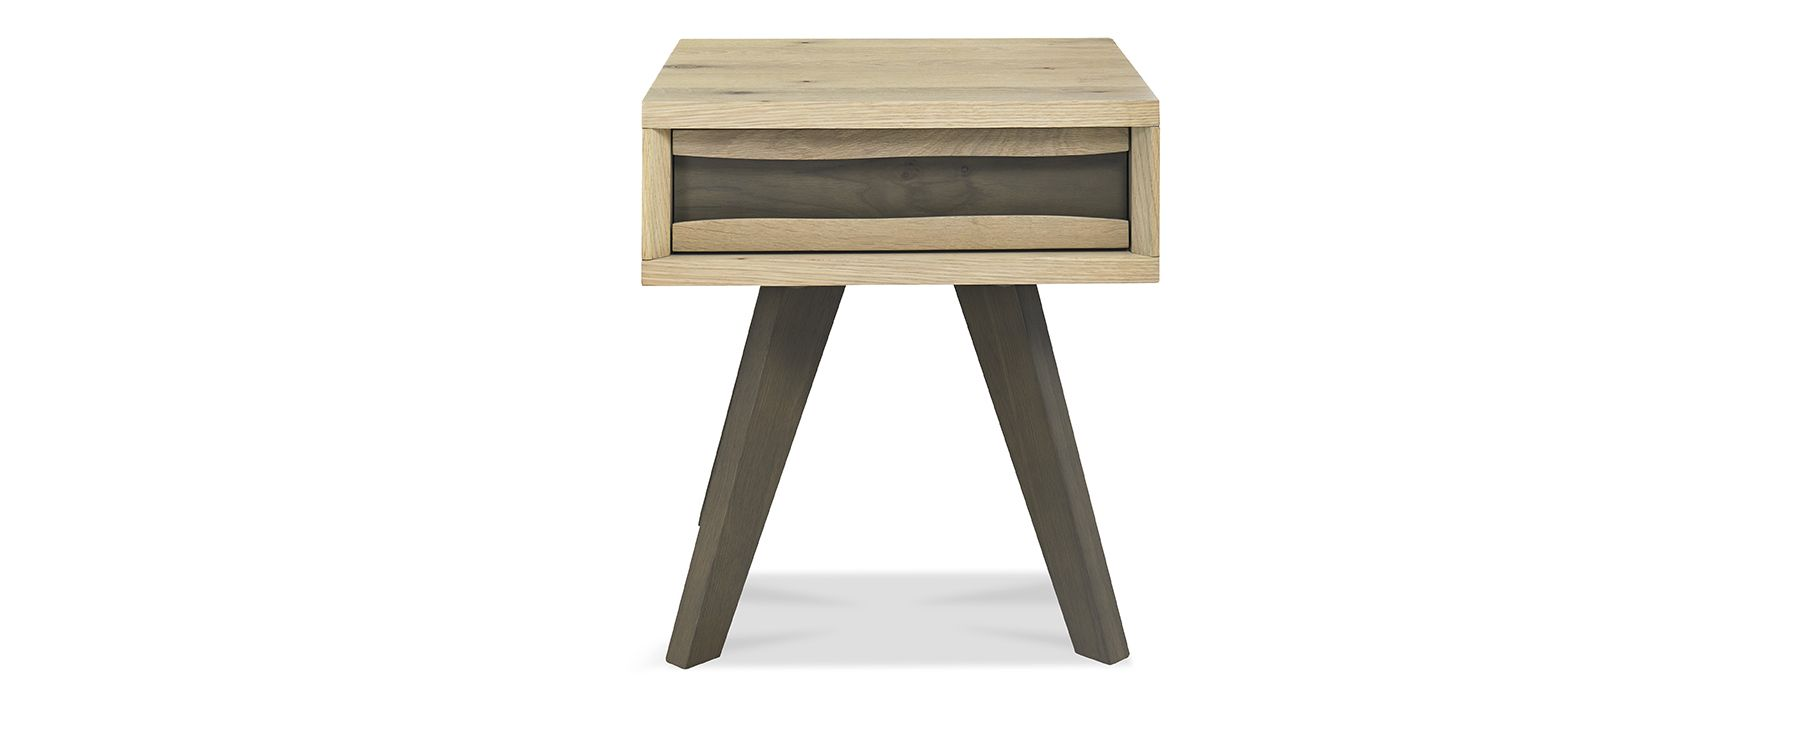 CARELL LAMP TABLE WITH DRAWER - L50cm x D46cm xH55cm - FRONT DETAIL